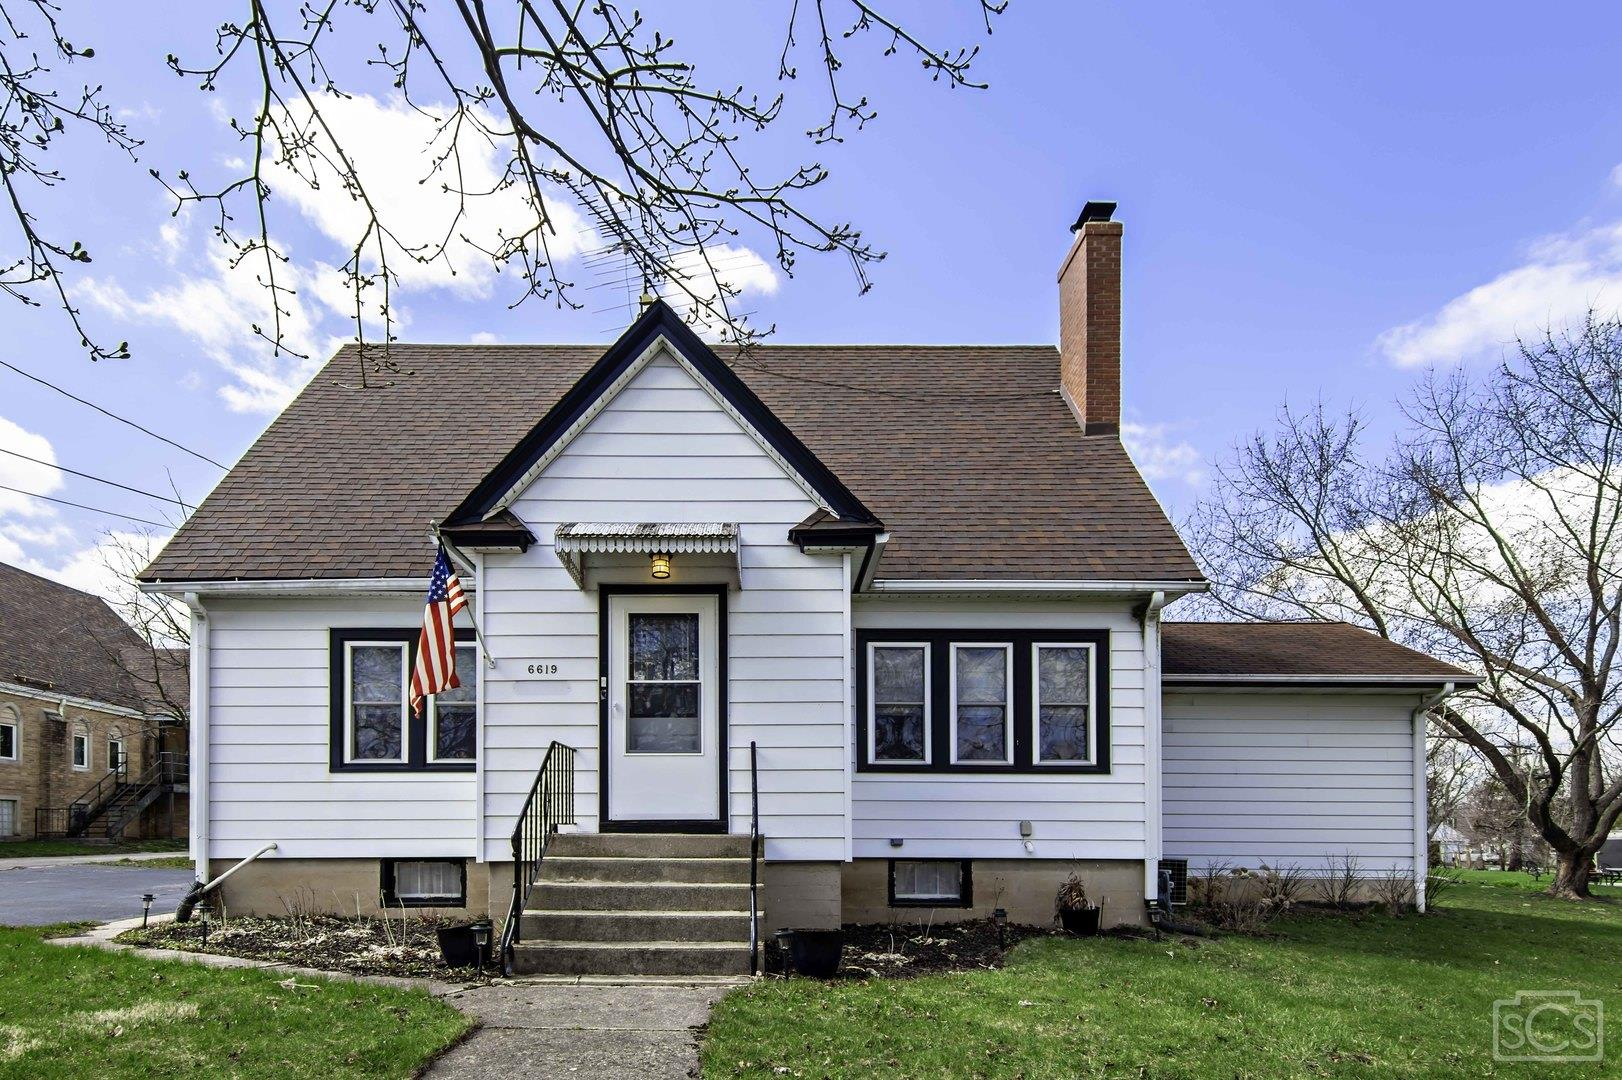 6619 Main Street, Union, IL 60180 - #: 10688834